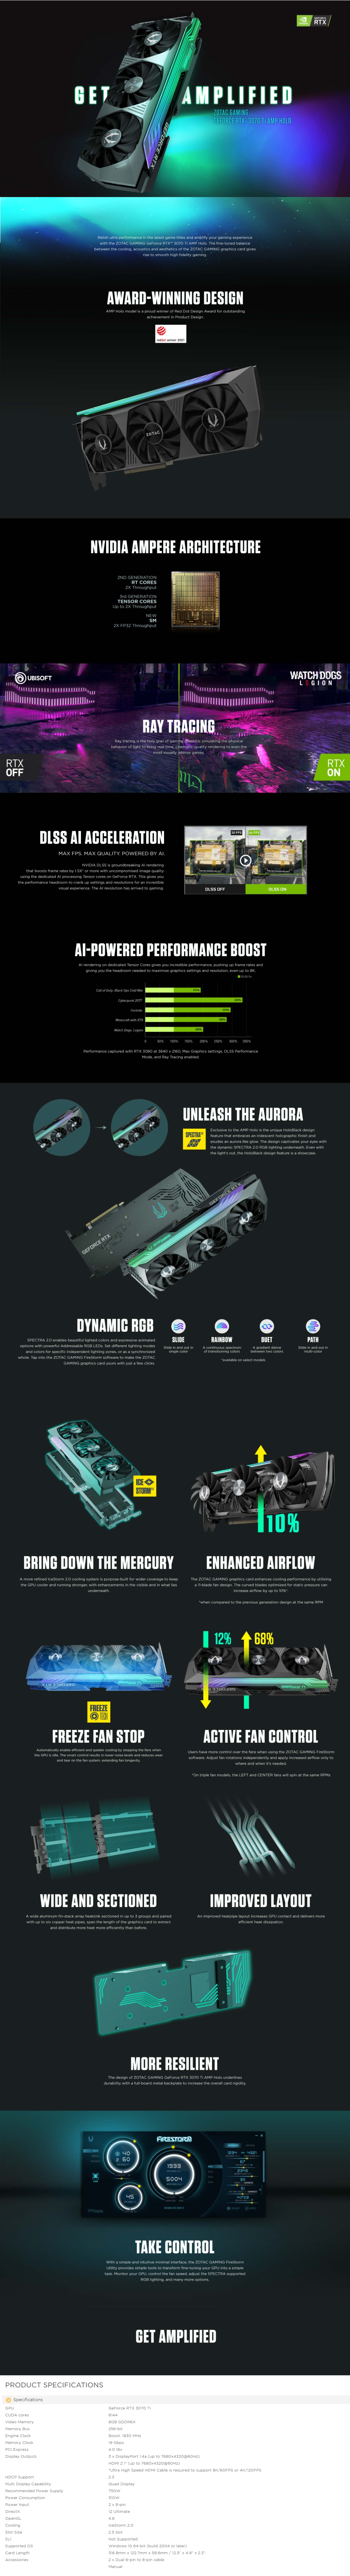 A large marketing image providing additional information about the product ZOTAC GAMING GeForce RTX 3070 Ti AMP Holo 8GB GDDR6X - Additional alt info not provided